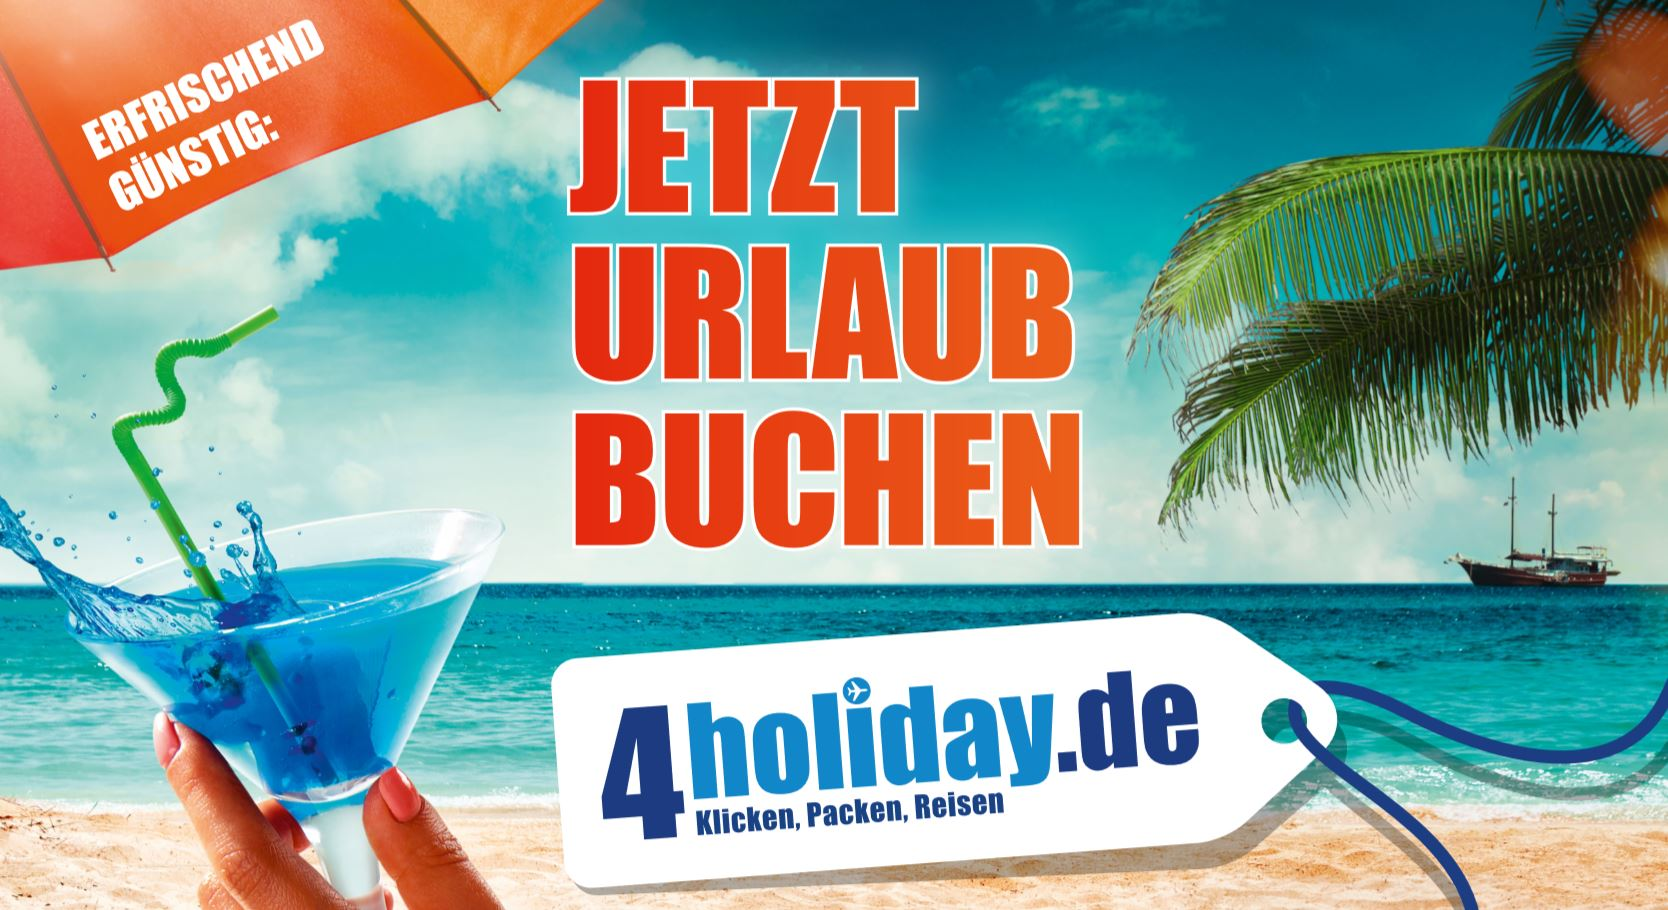 4holiday.de – Klicken, Packen, Reisen